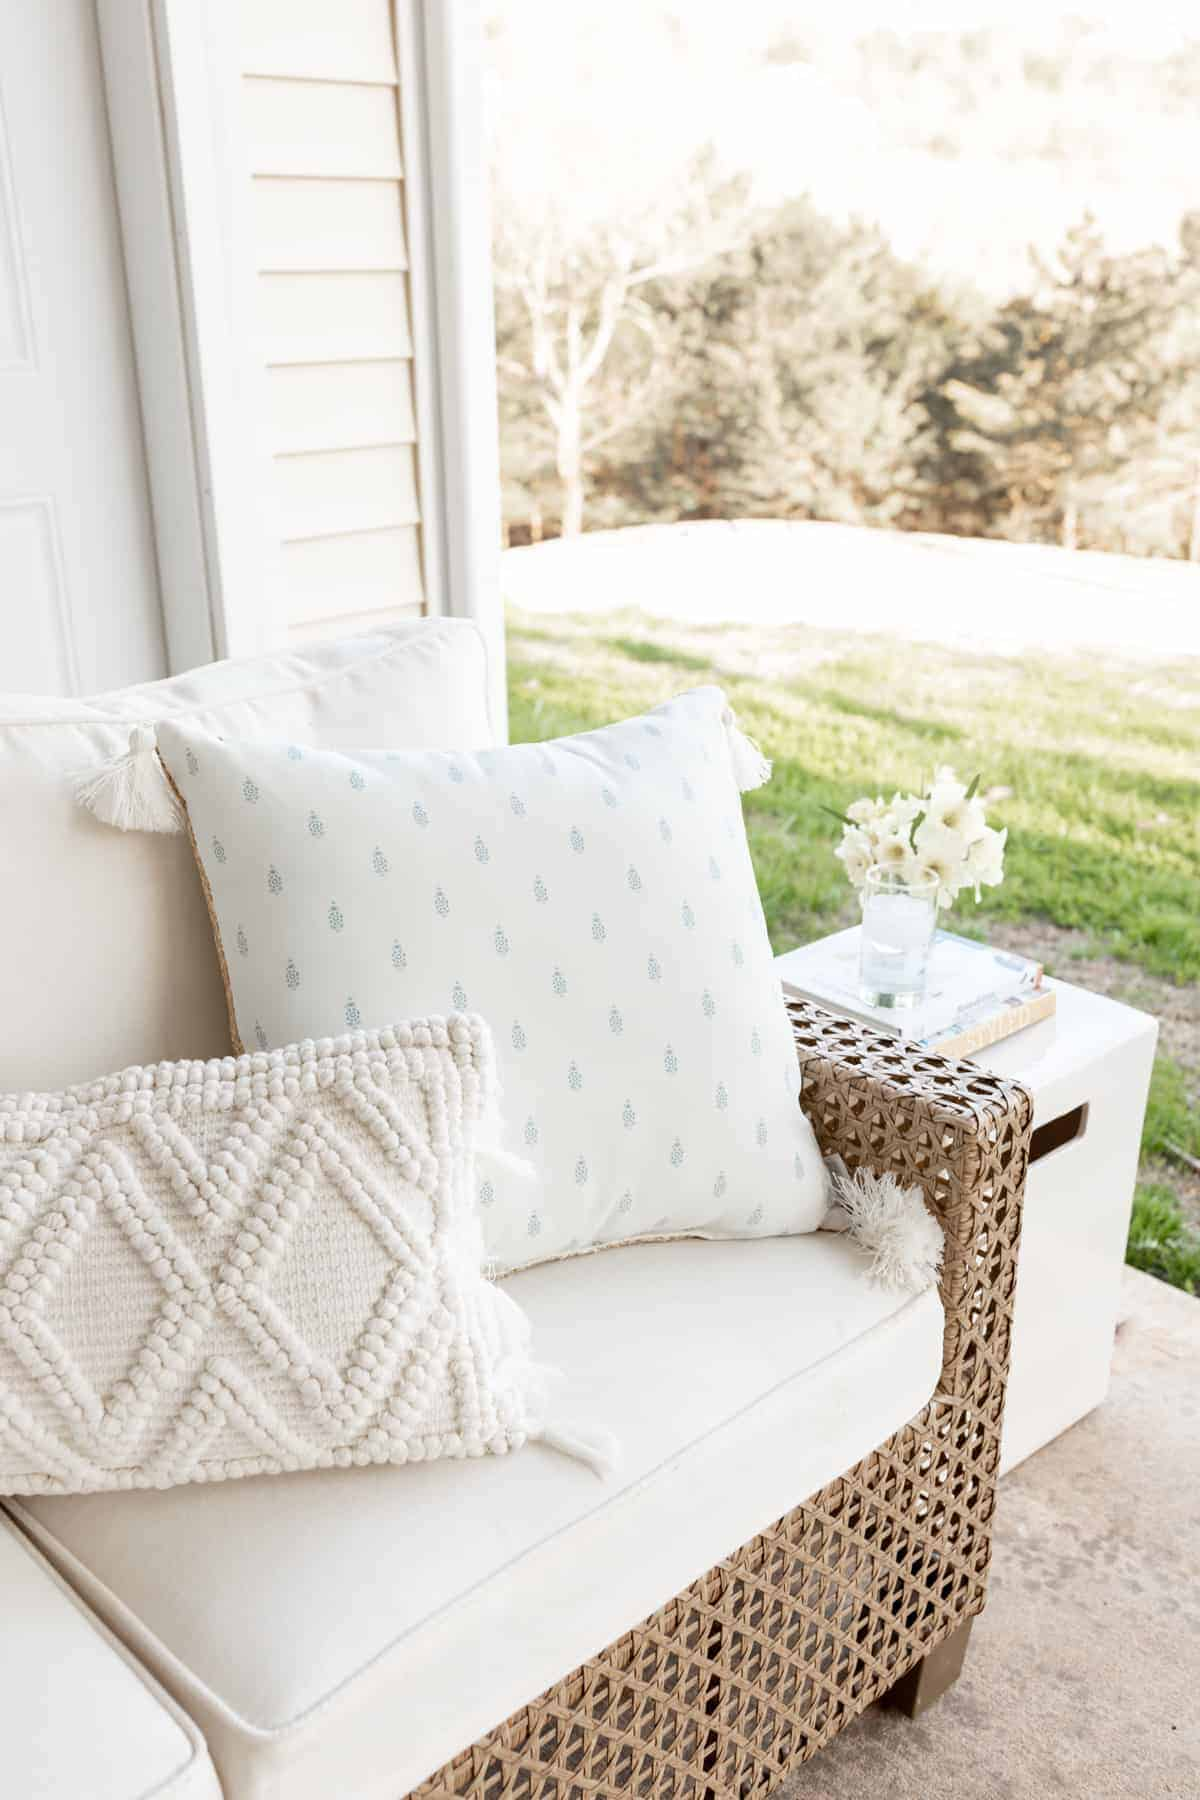 An outdoor room patio scene with a white sectional and flowers on a side table.